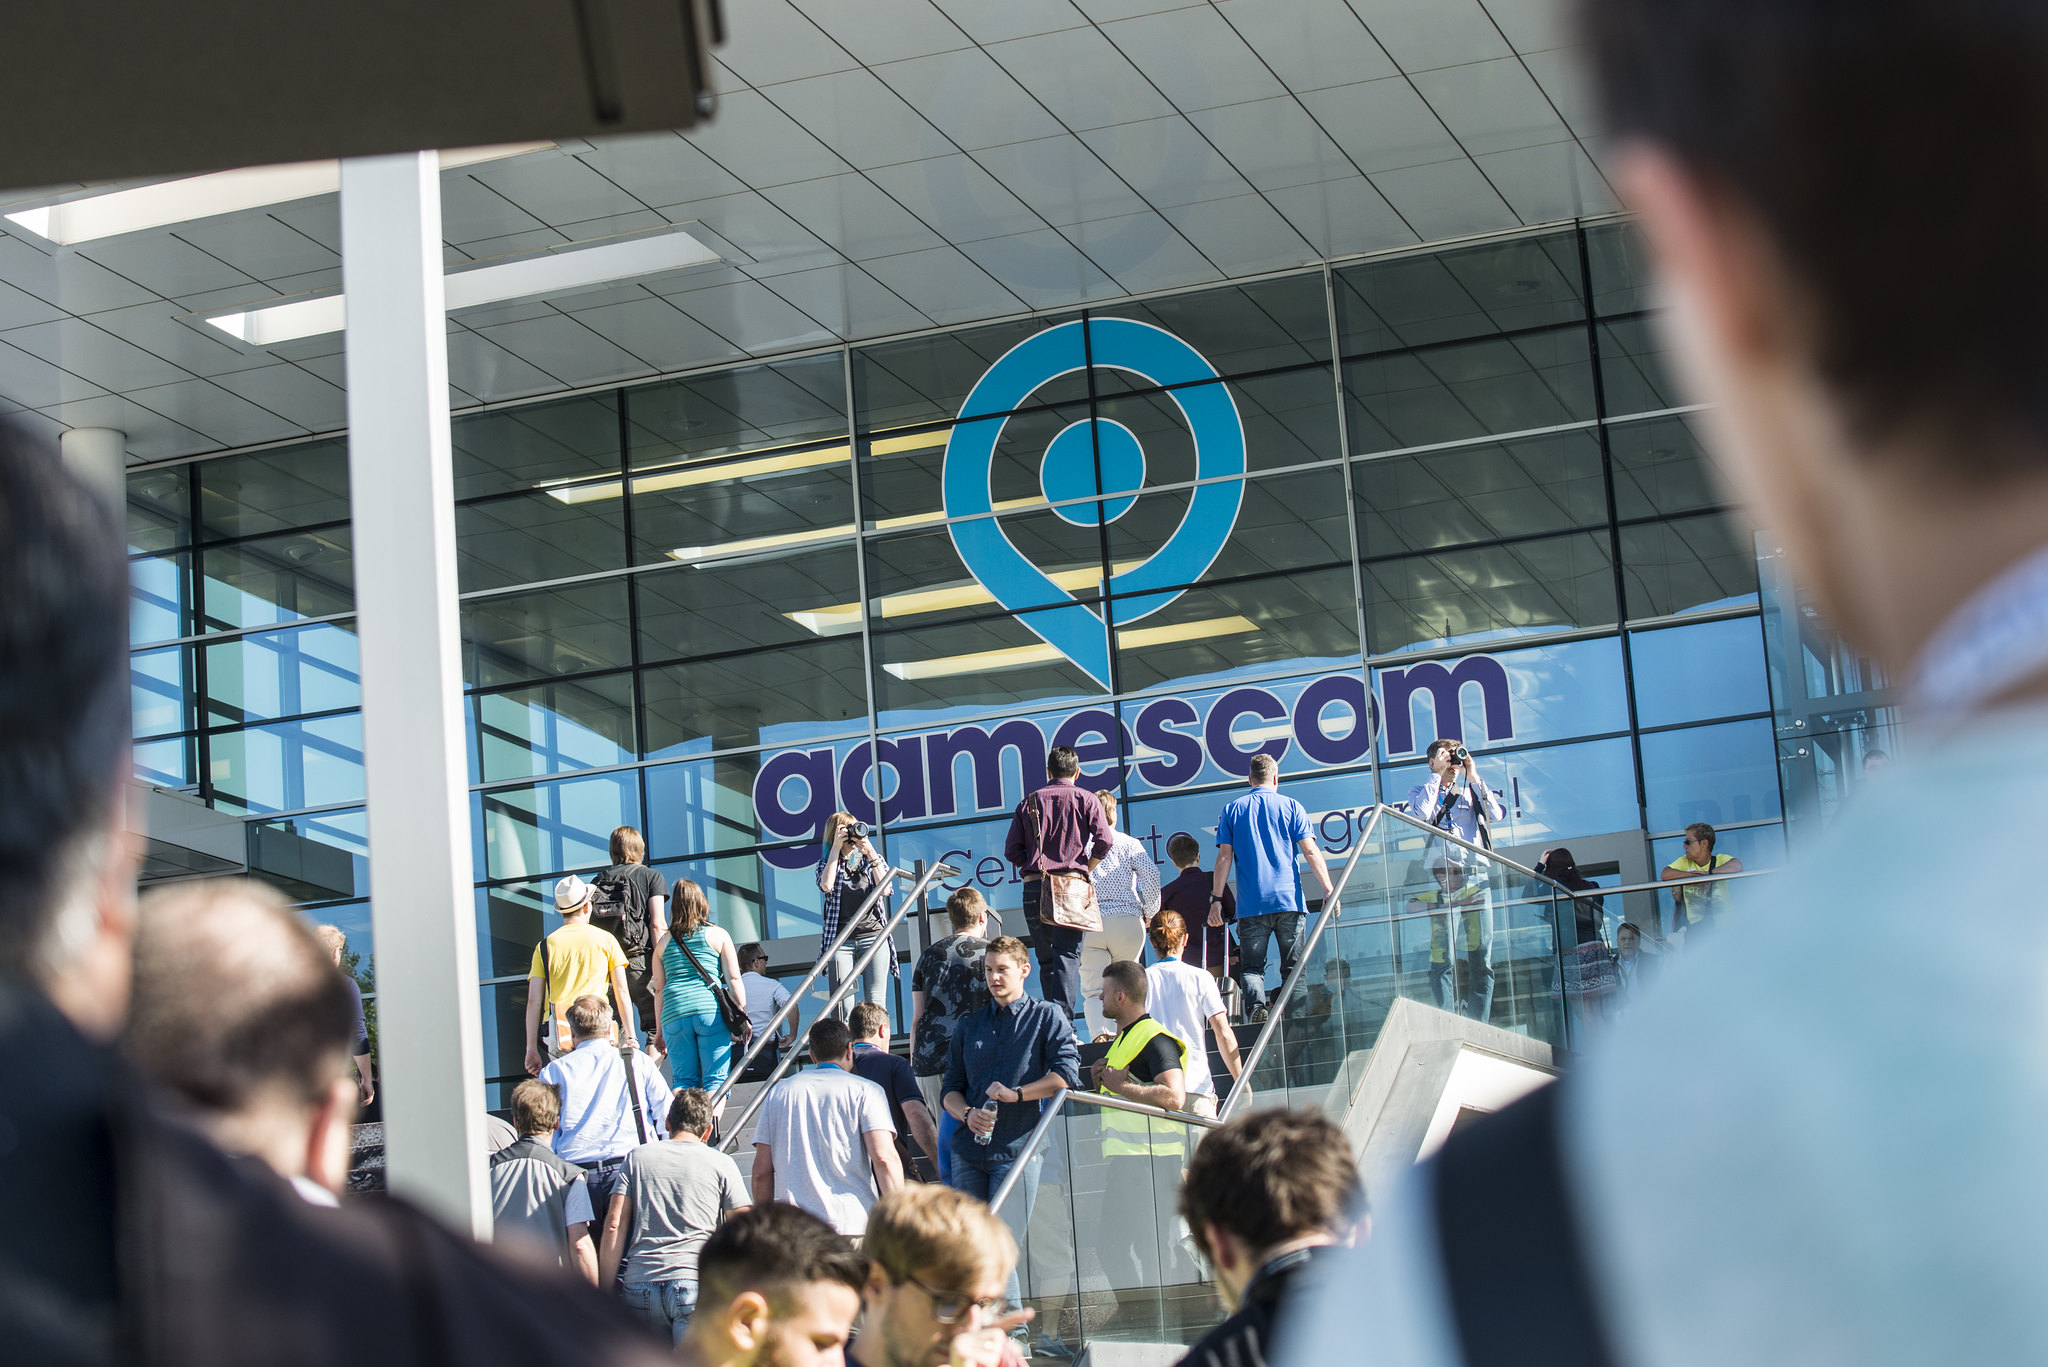 A photo of the Kolnmesse convention center from Gamescom 2016